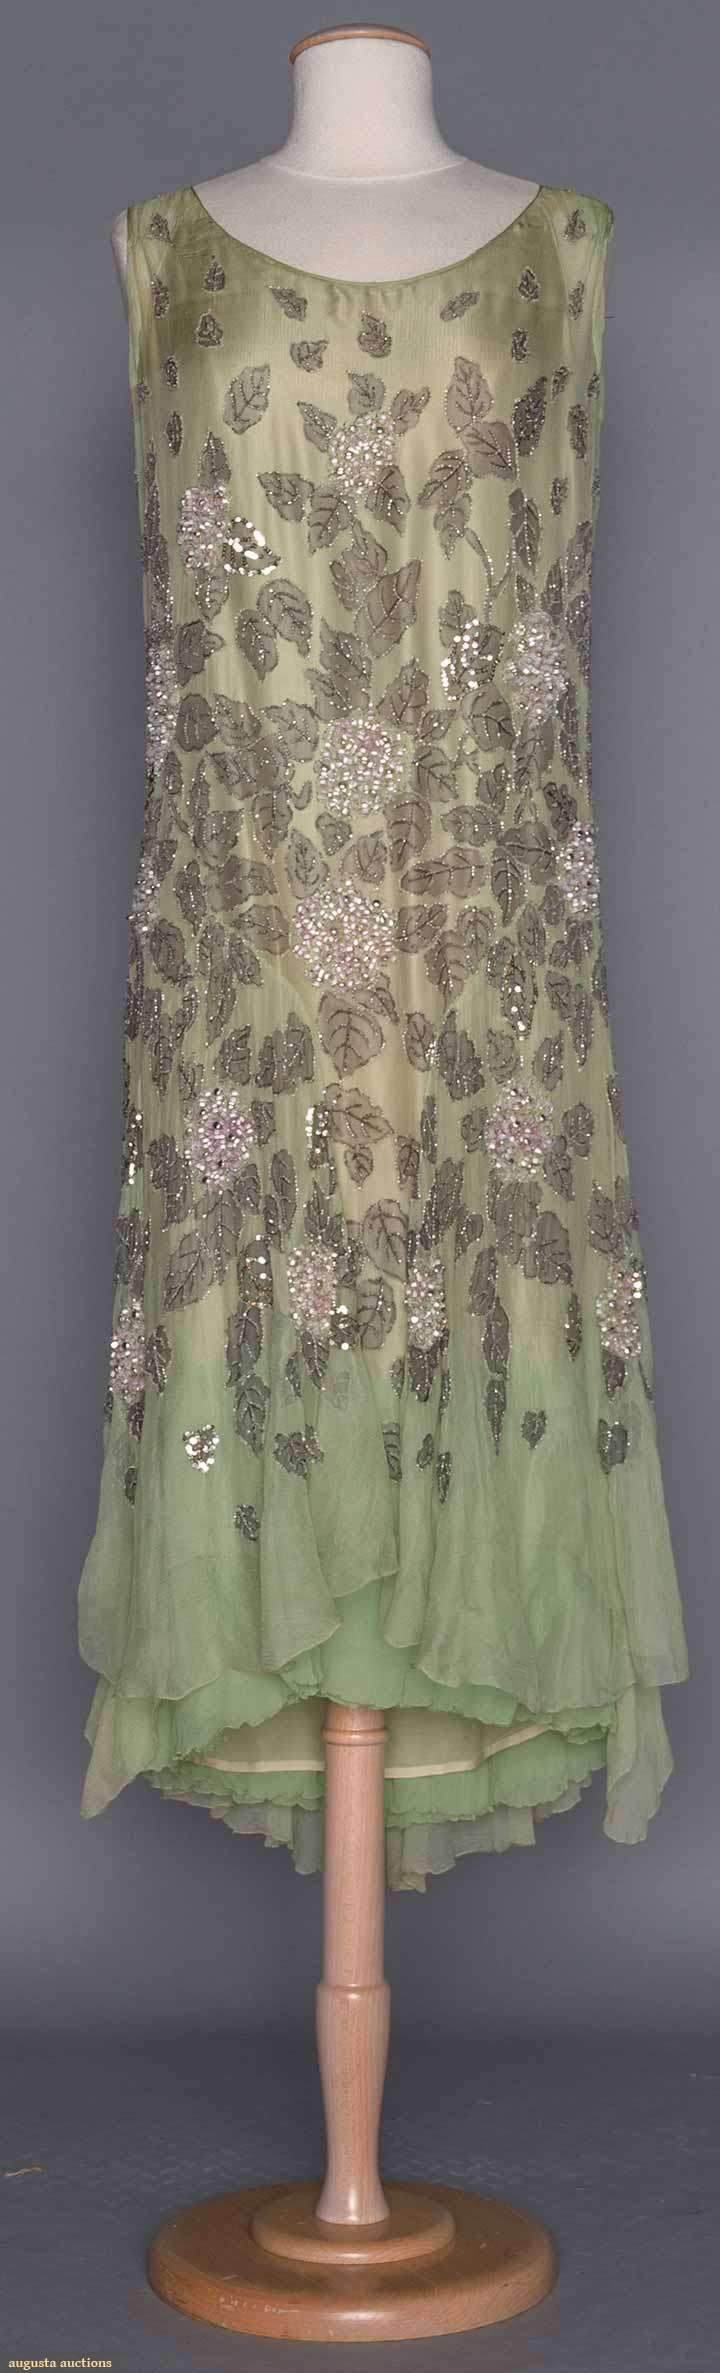 BEADED GREEN EVENING DRESS, 1920s | Pale mint chiffon, floral & leaf embroidery w/ silver sequins & blush pink barrel beads, multi-layered chiffon under dress